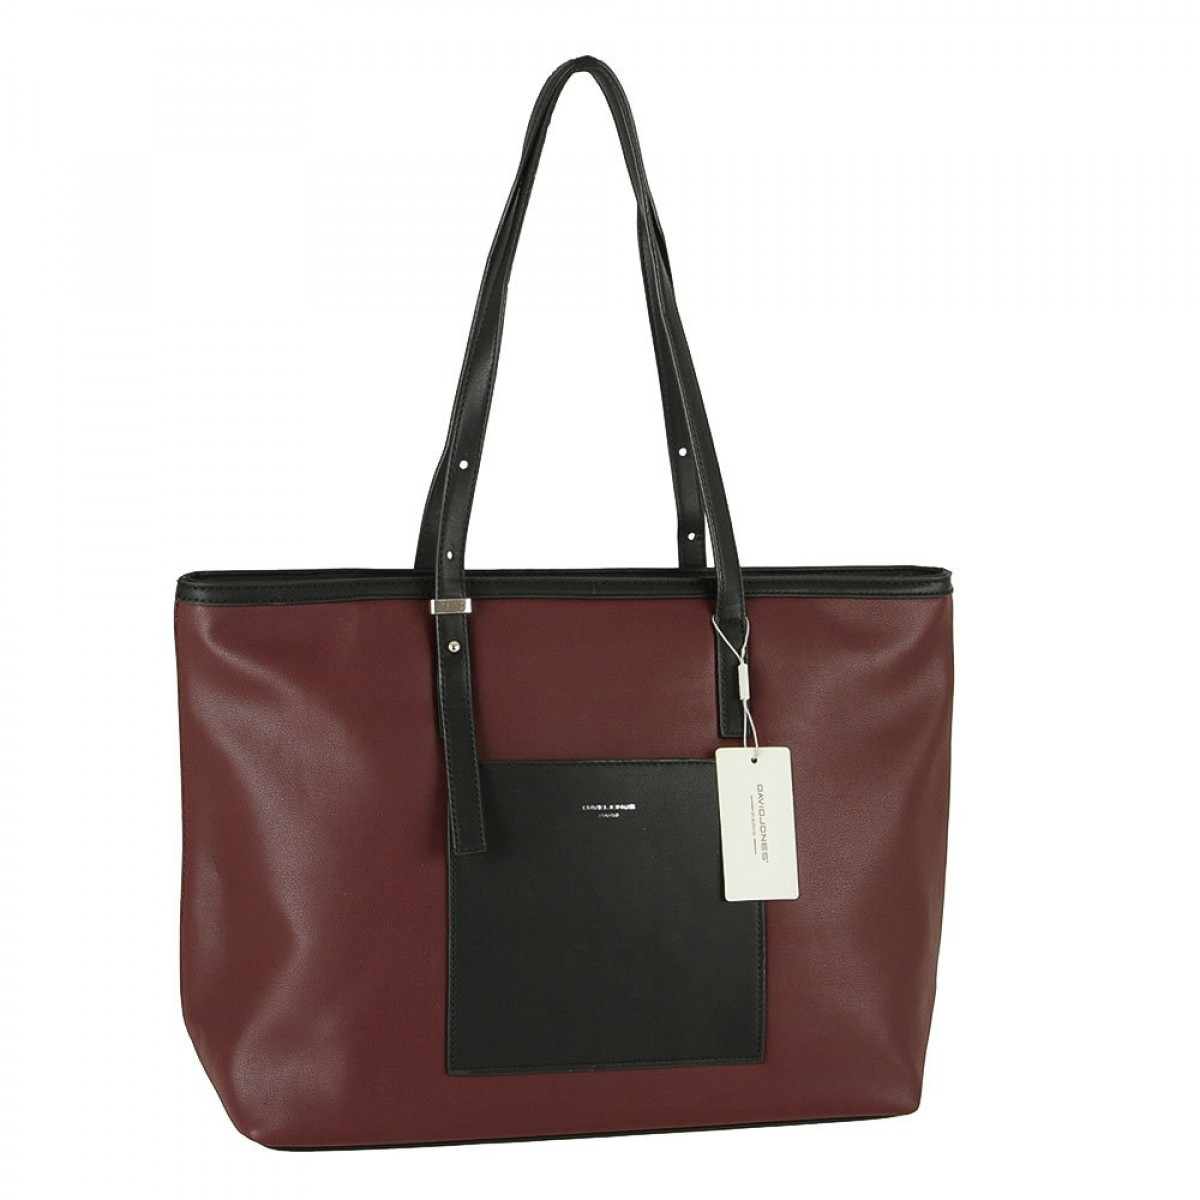 Жіноча сумка David Jones CM5871 DARK BORDEAUX